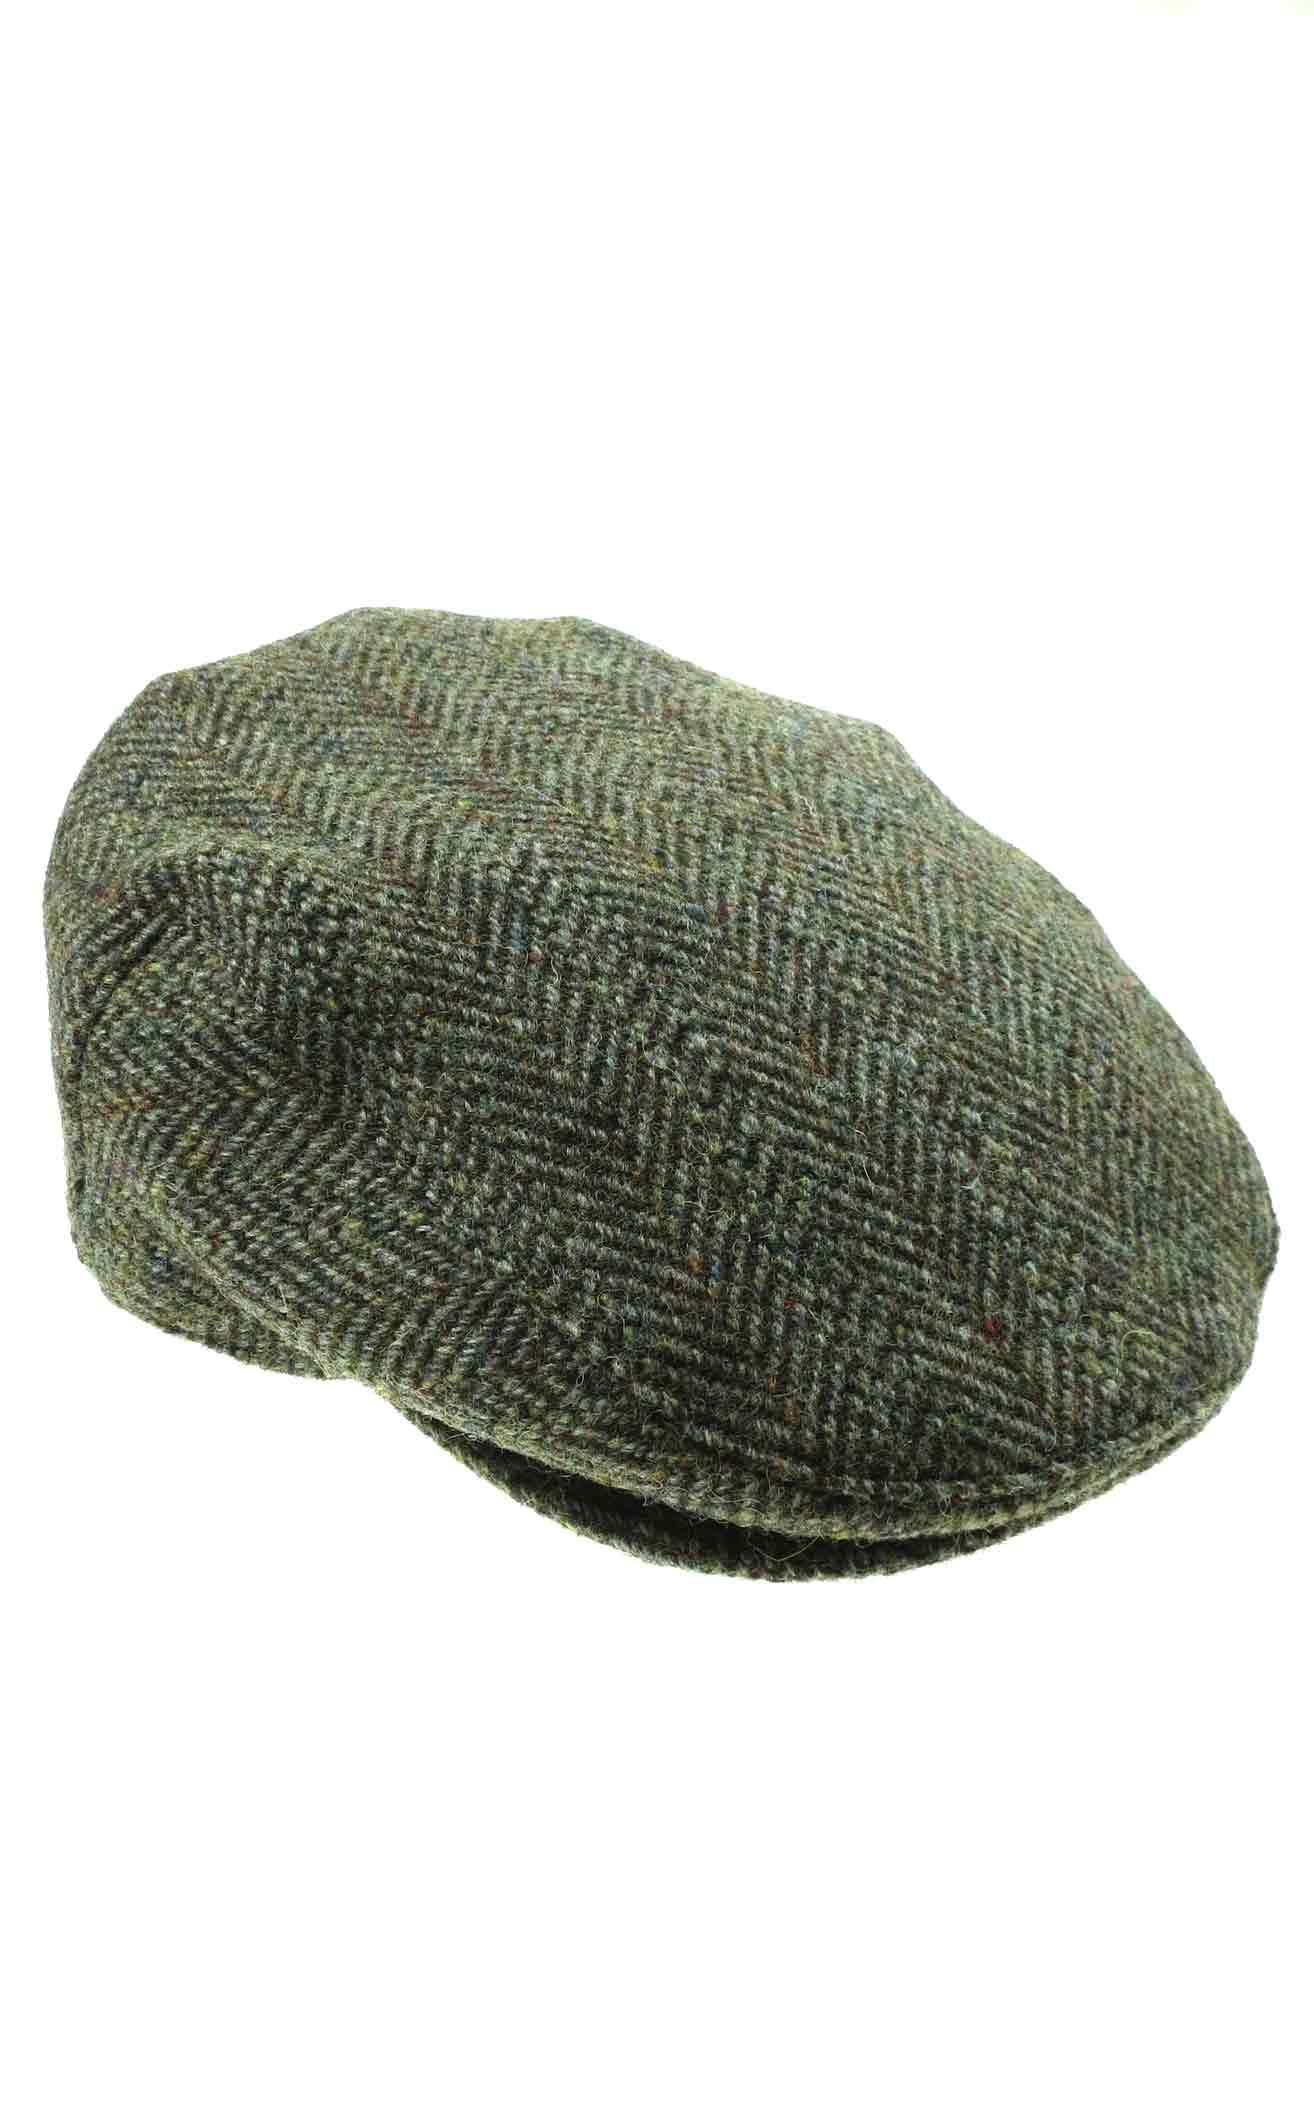 2a56d662fd1 Buy schoffel tweed cap . Shop every store on the internet via ...